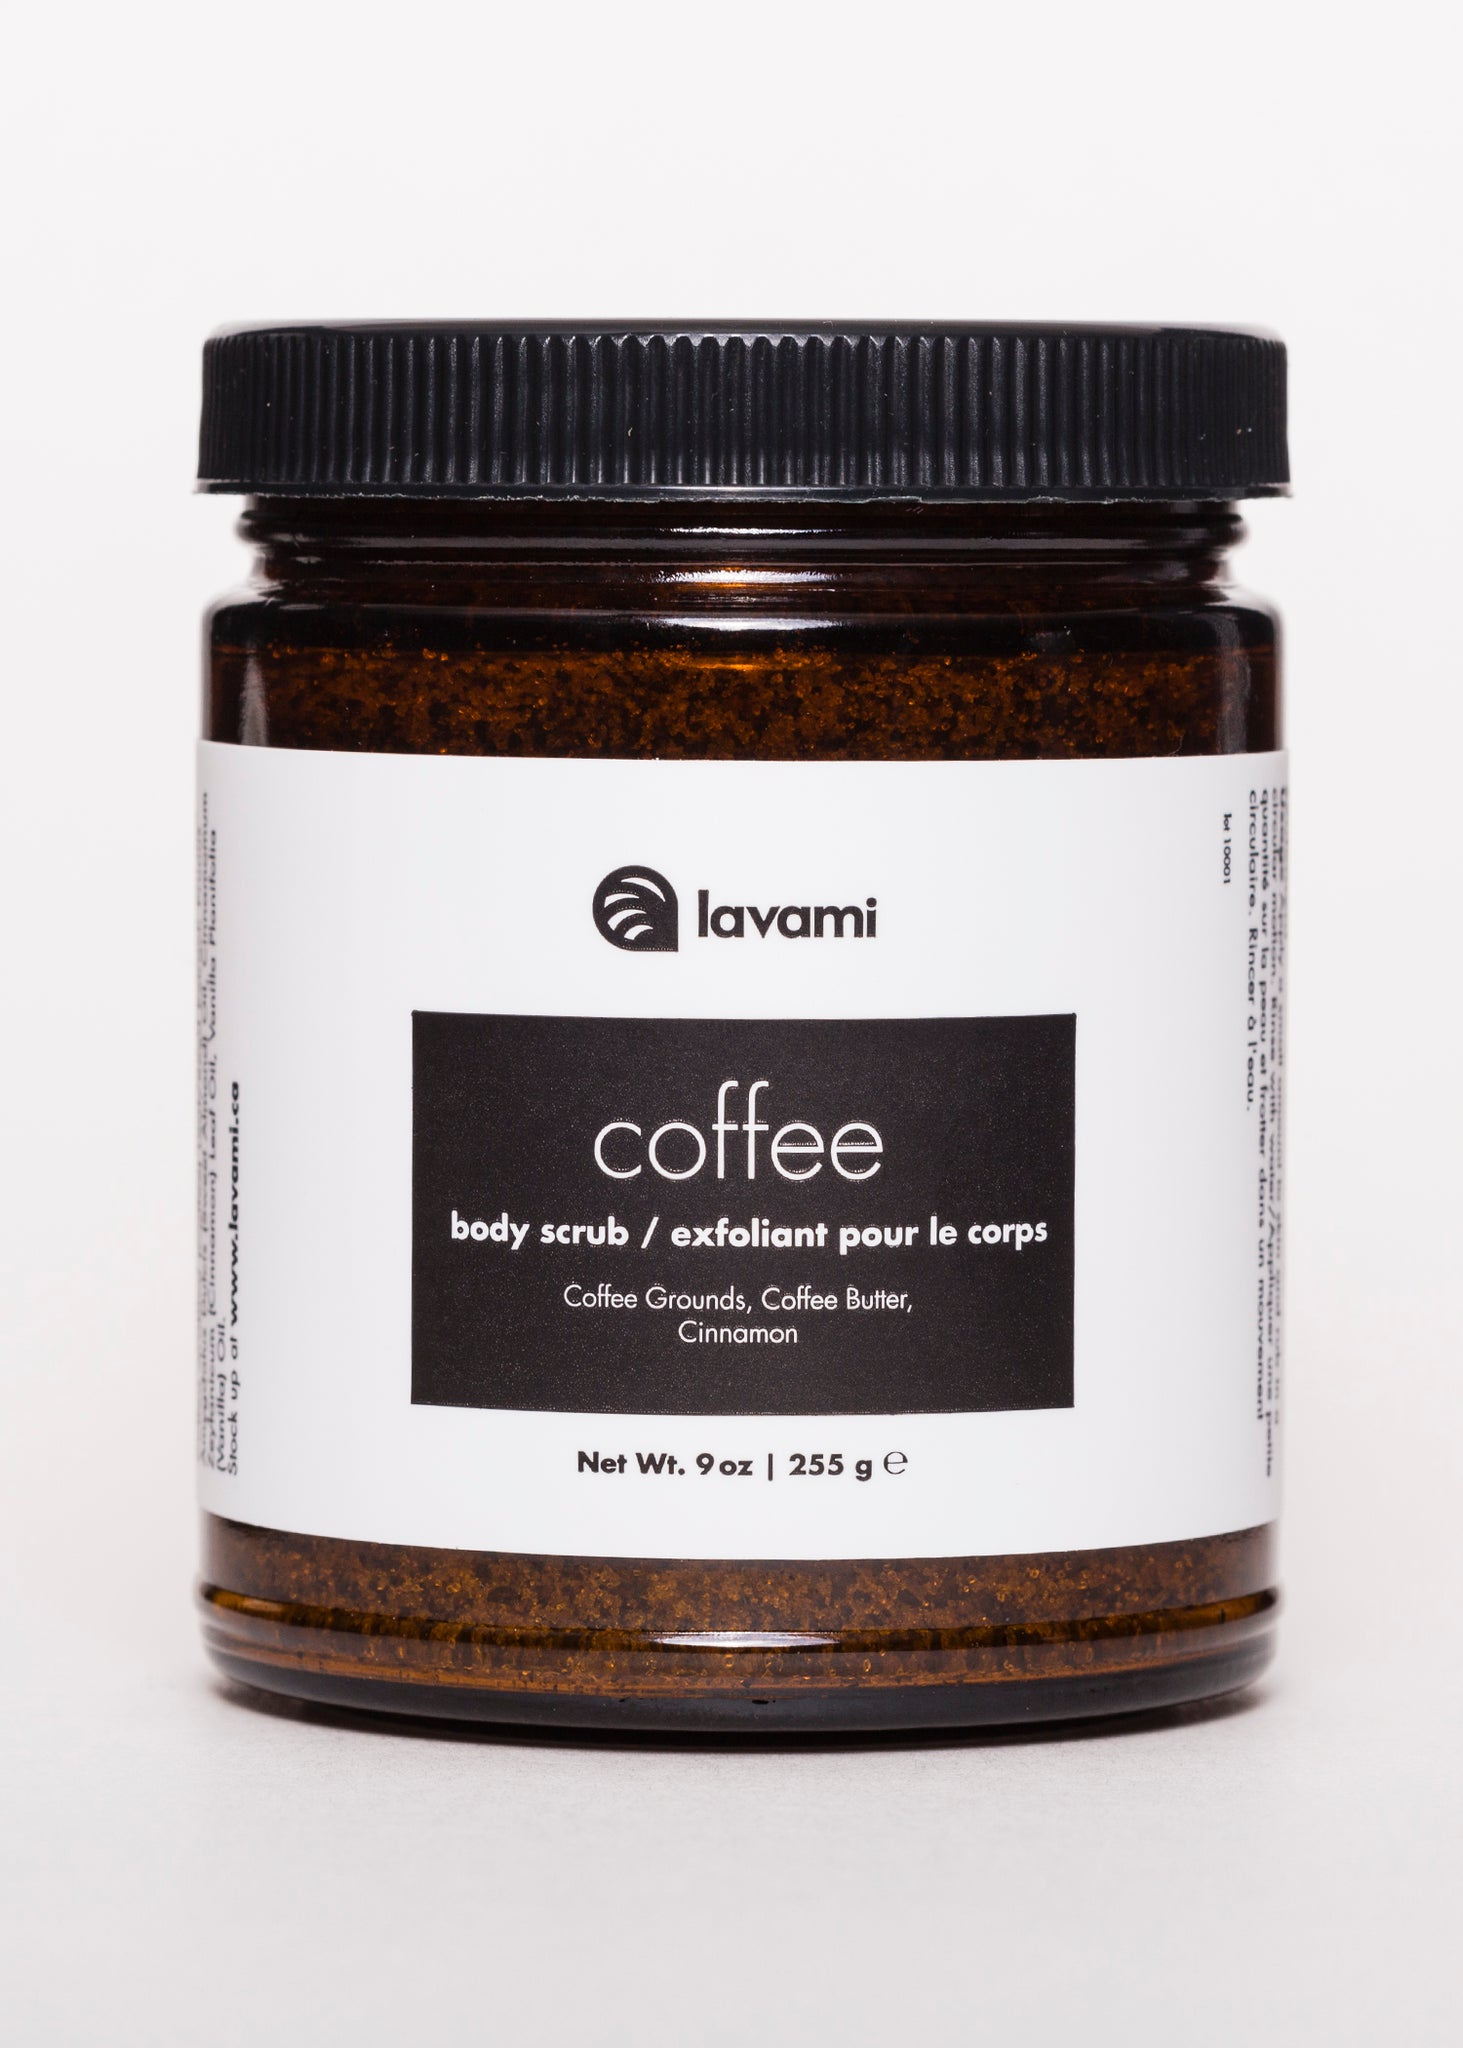 Coffee Body Scrub - Lavami | Goodnight Beauty | made in canada, canada brand, canada beauty, natural beauty, natural skin care